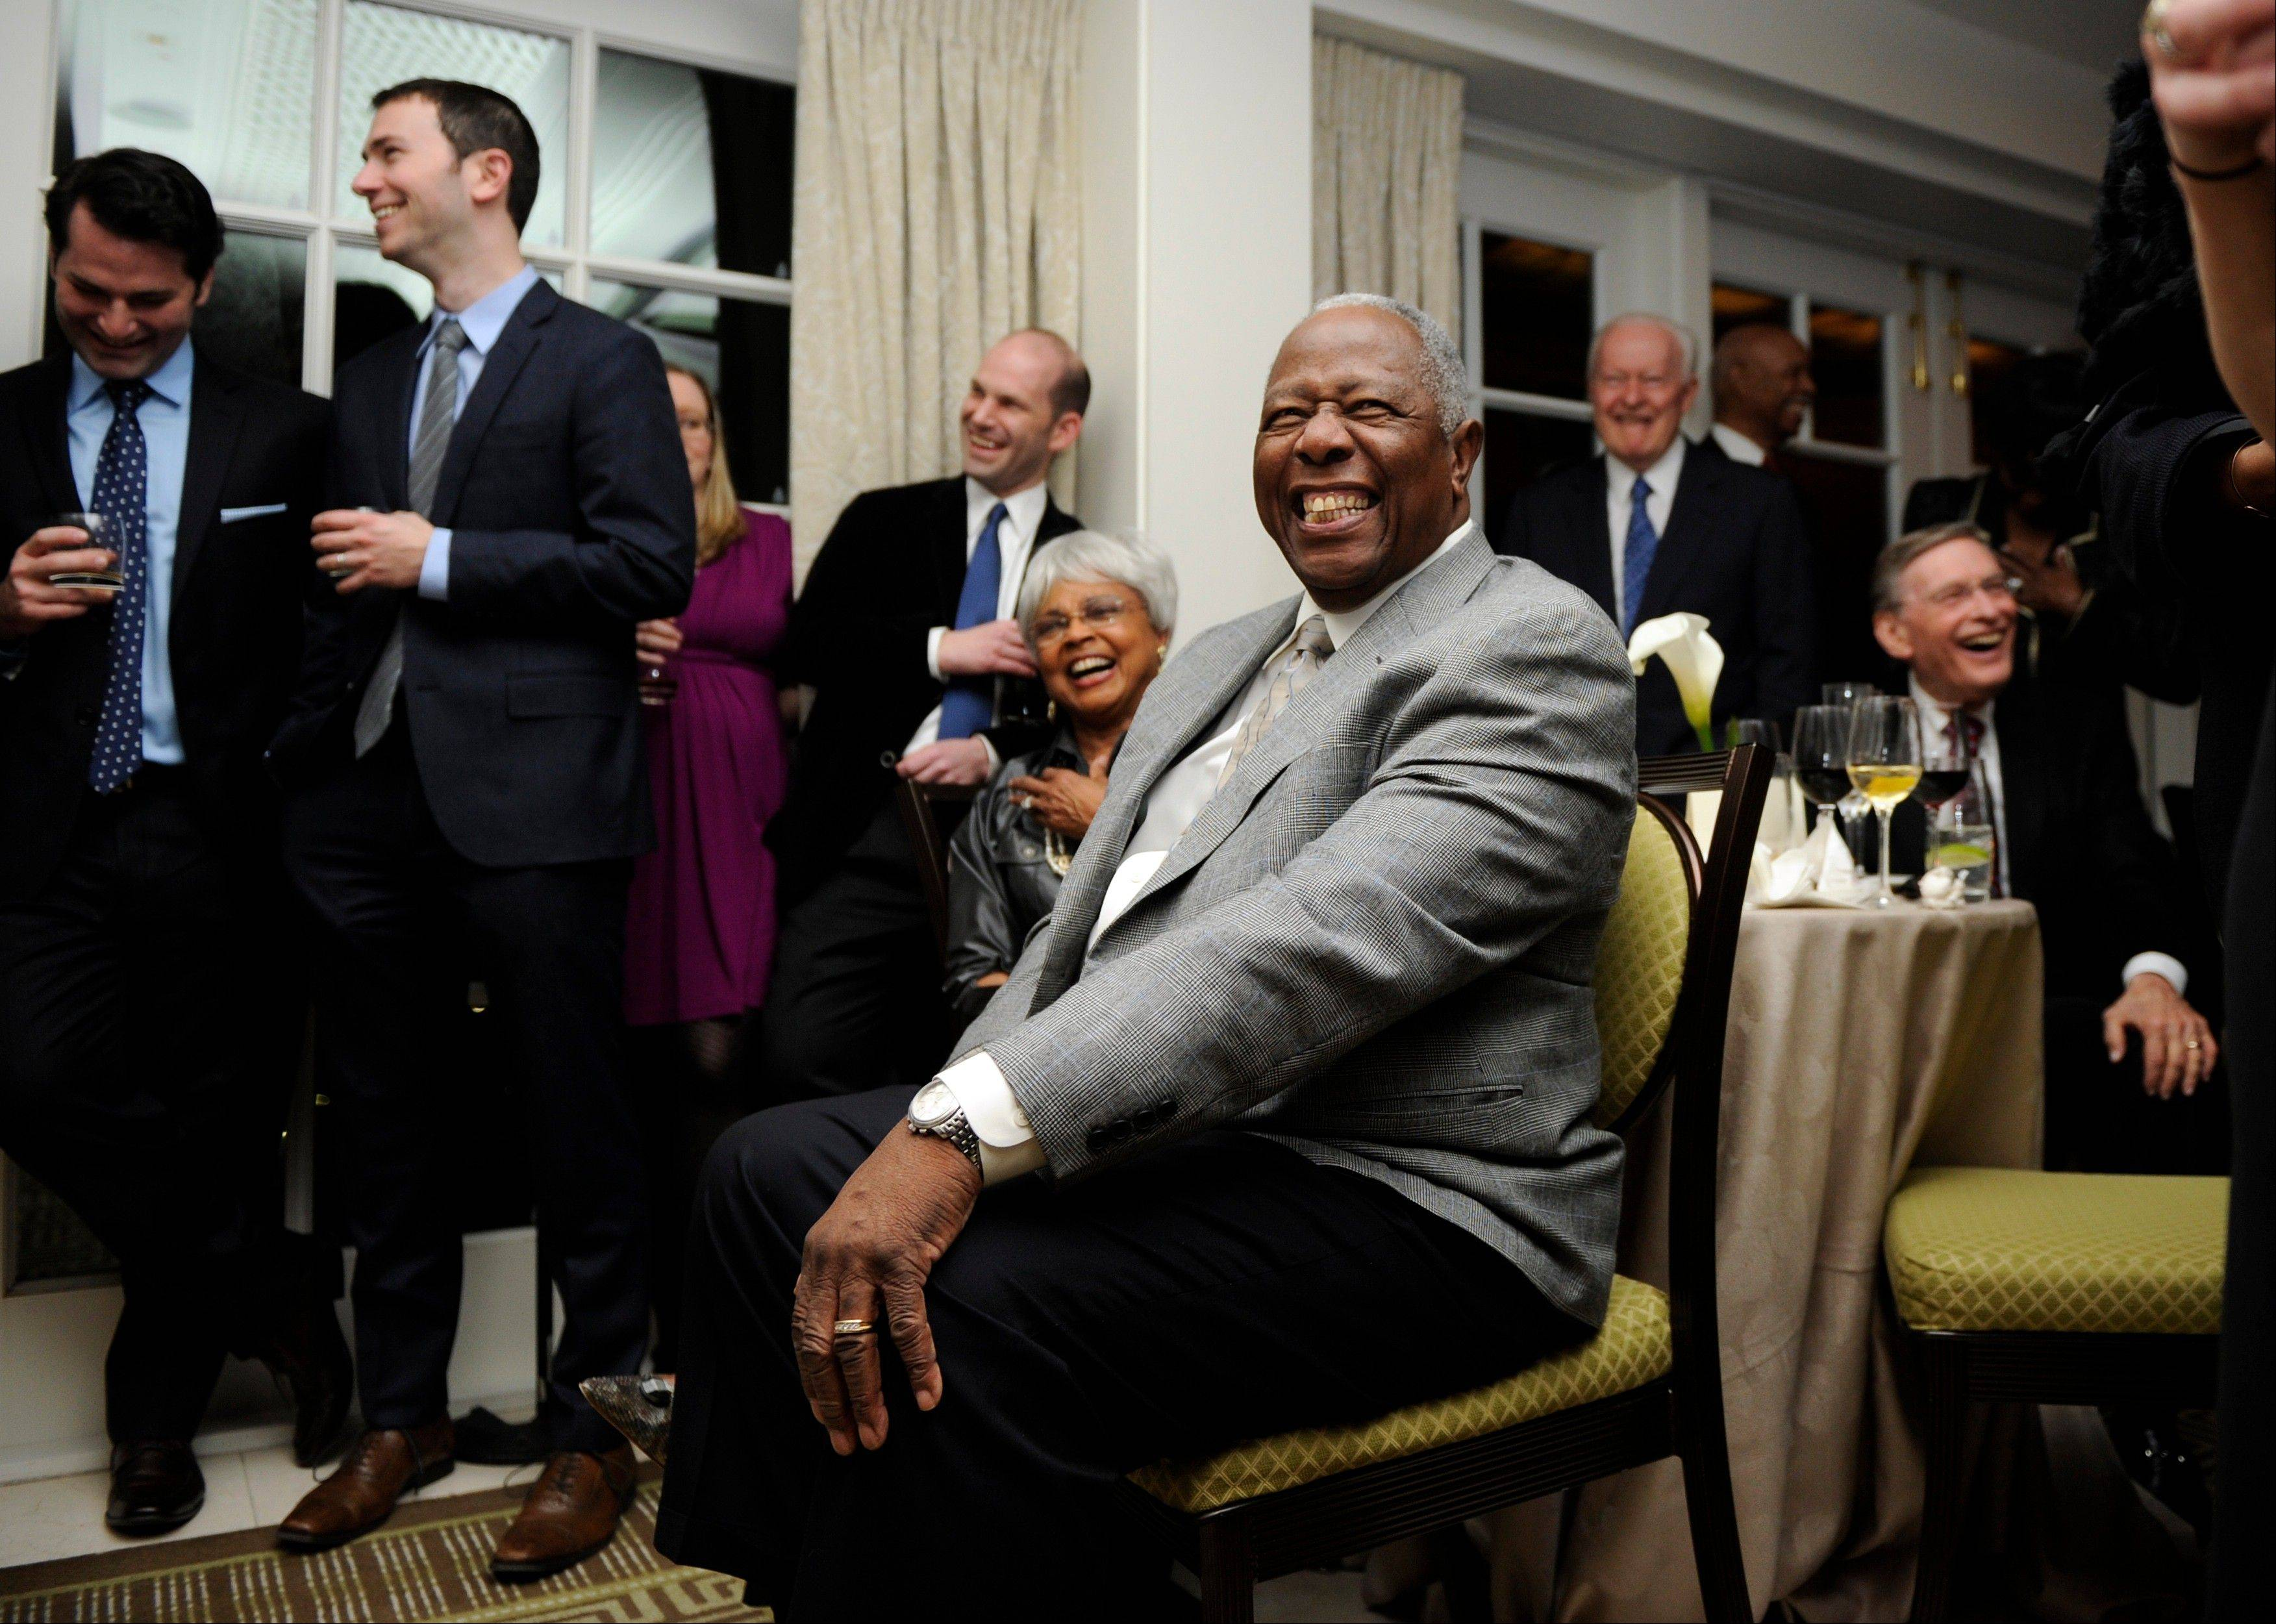 Baseball Hall of Famer Hank Aaron, center, smiles Friday during a reception in his honor.